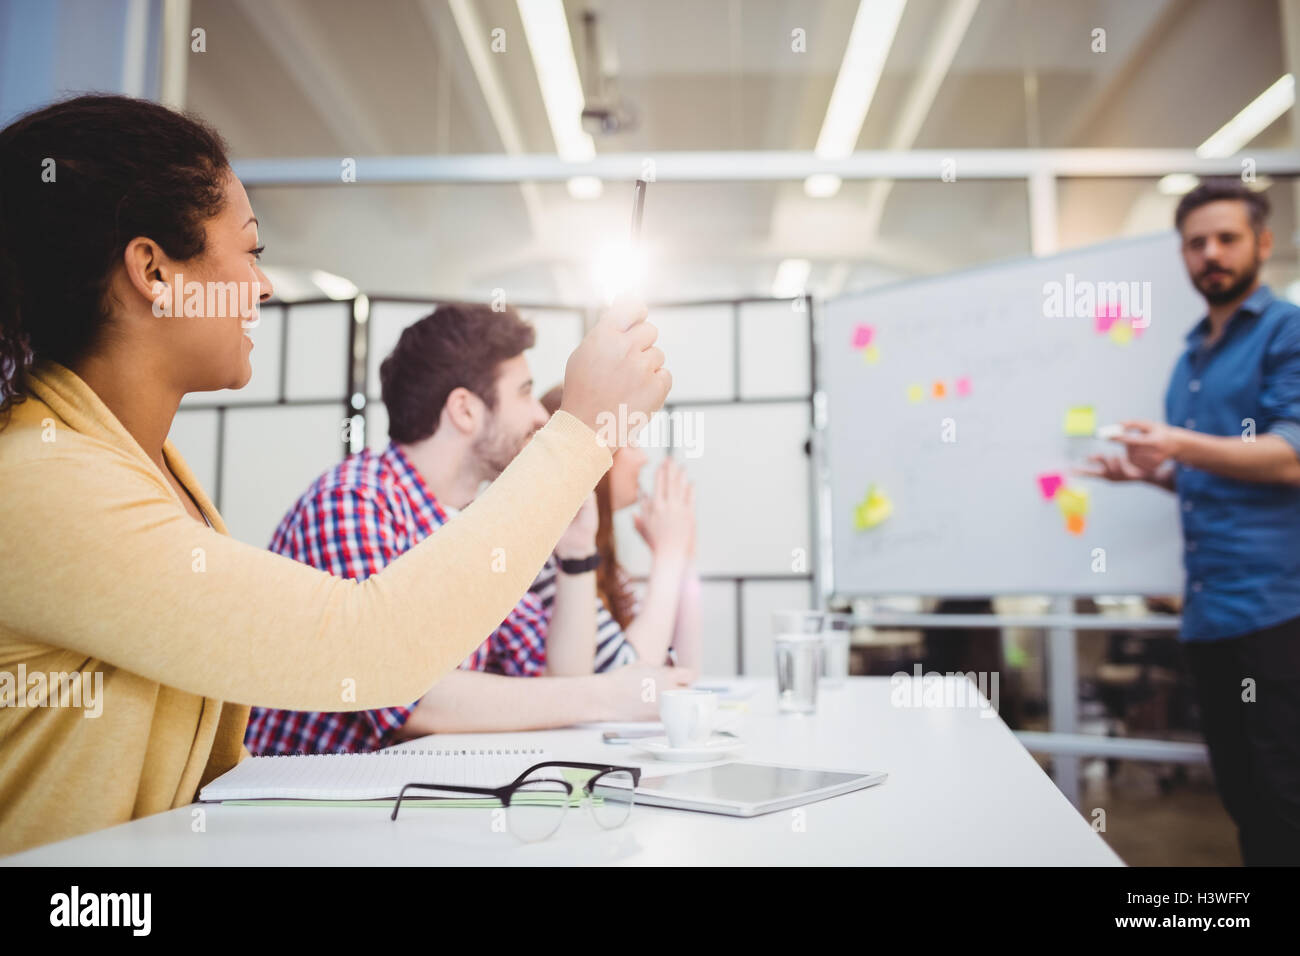 Colleagues in board room during brainstorming session at creative office - Stock Image